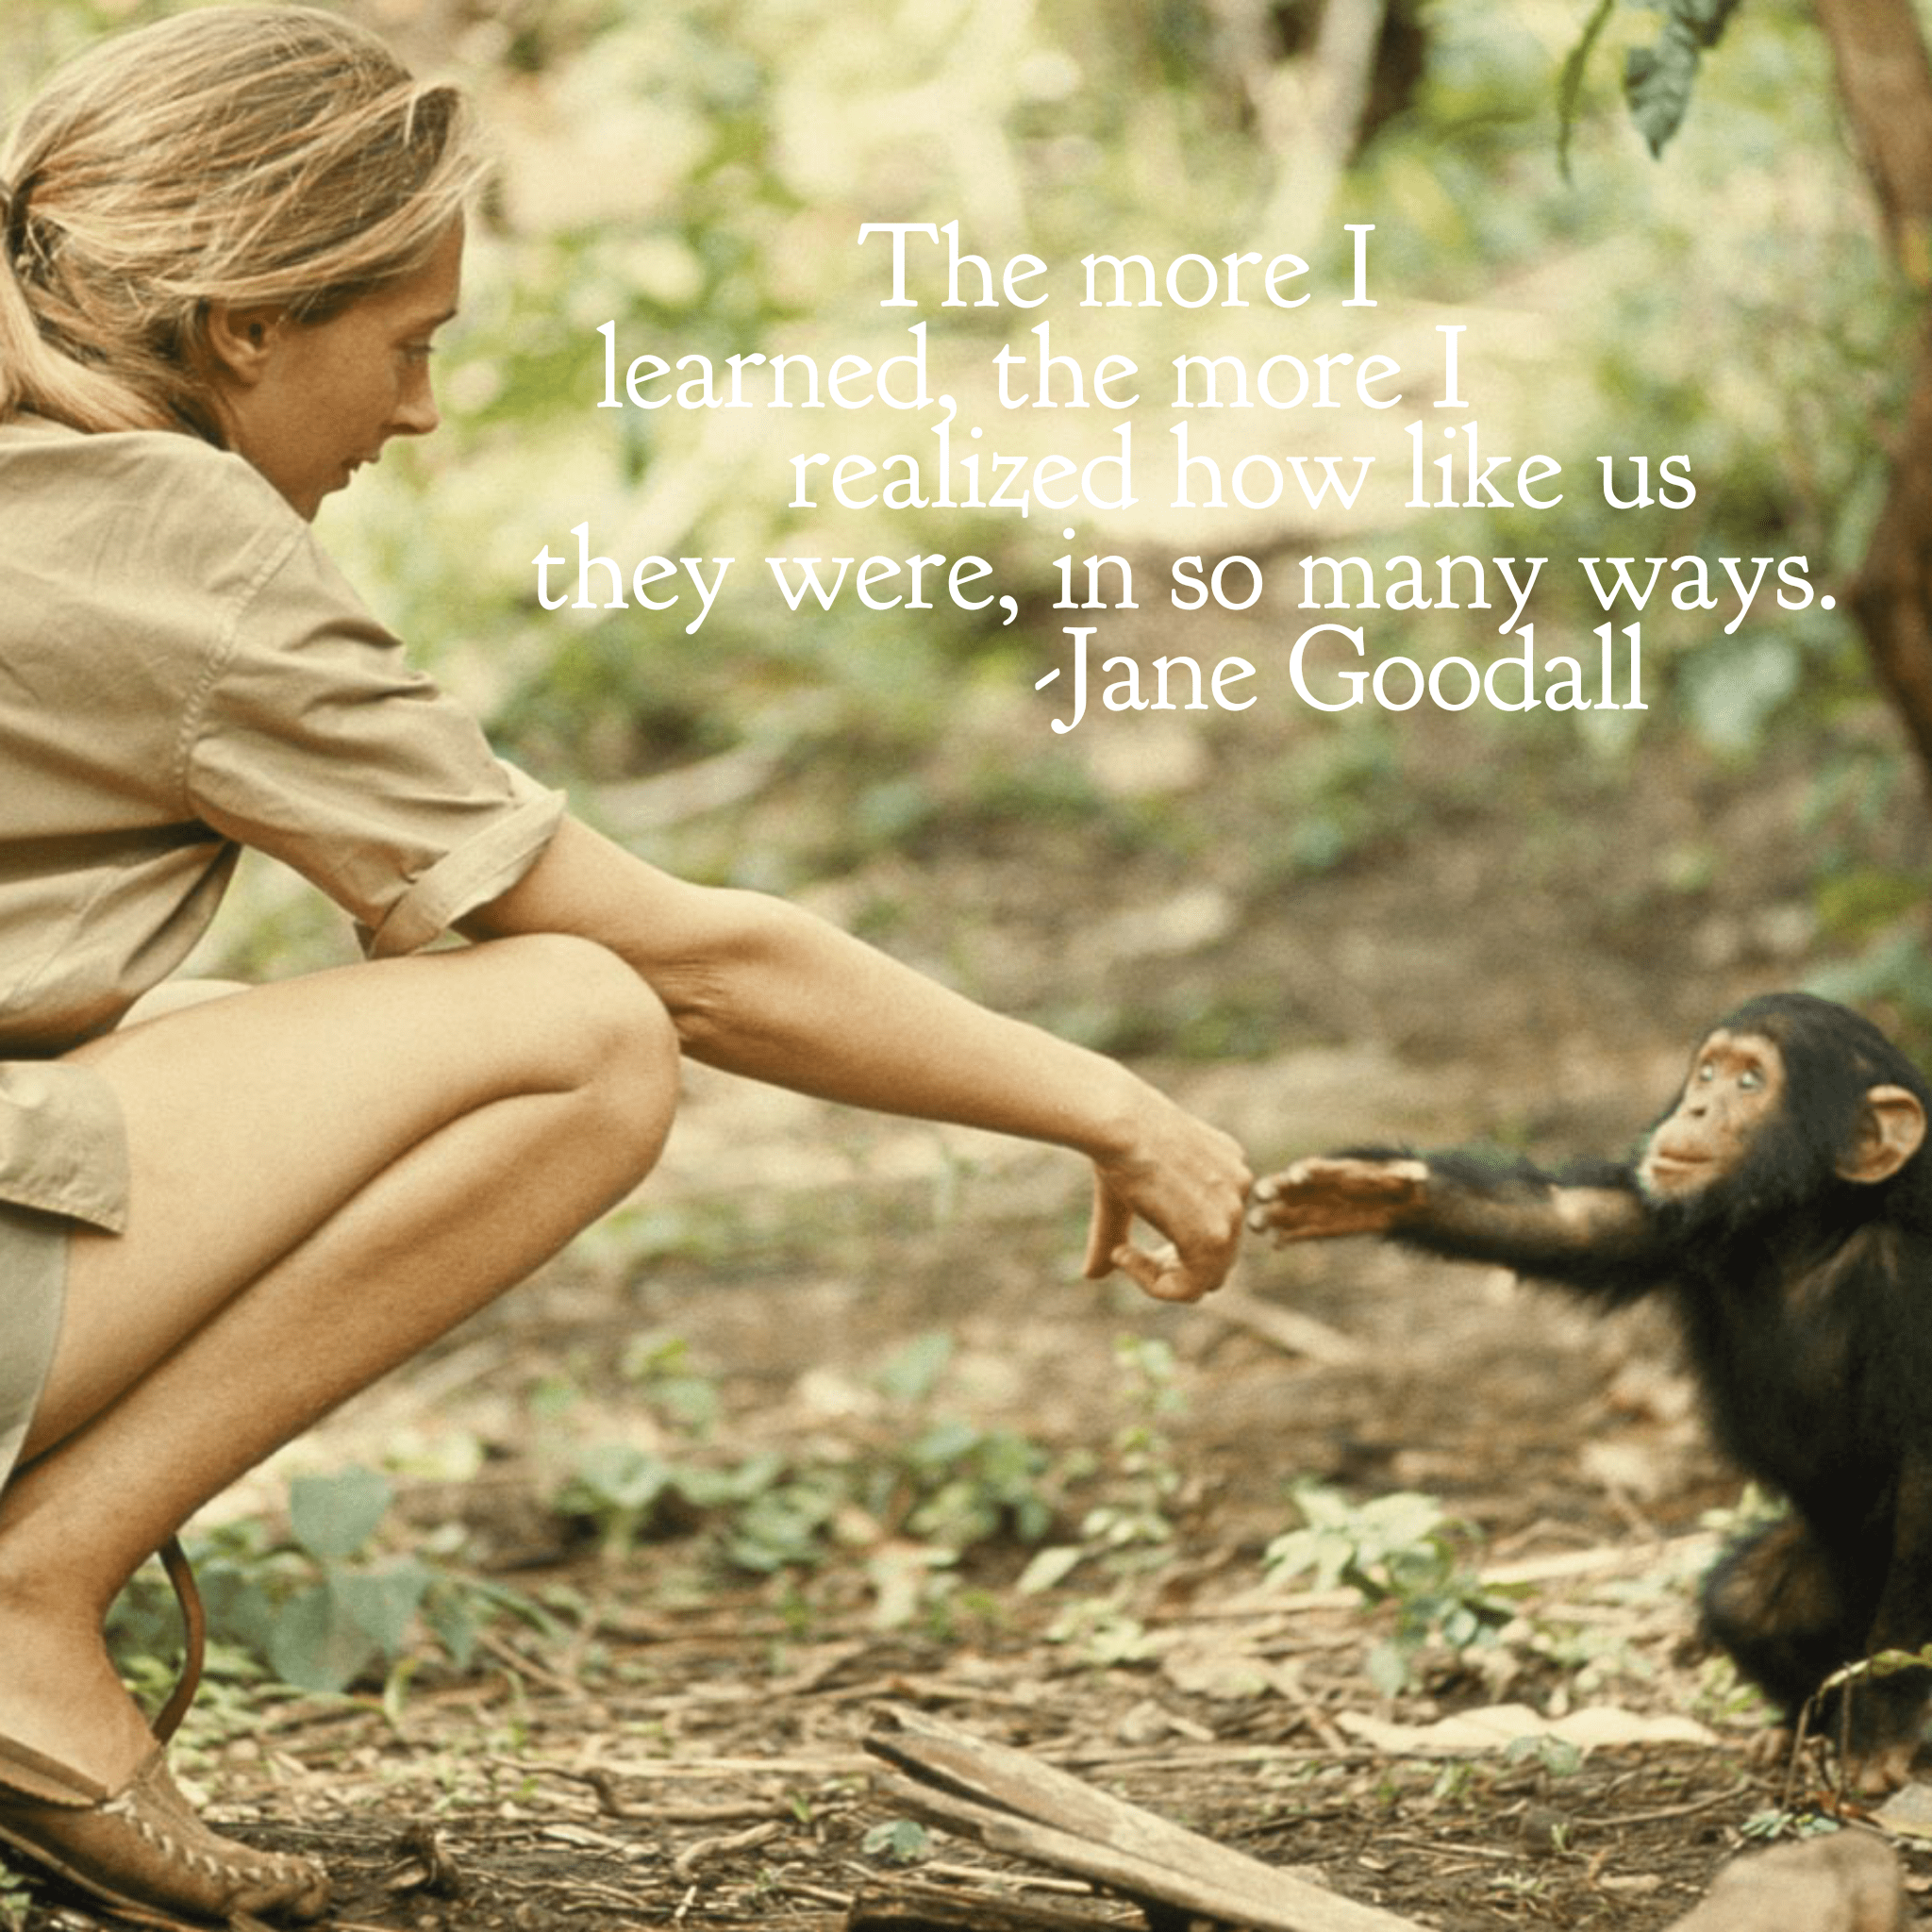 """The more I learned, the more I realized how like us they were, in so many ways."" -Jane Goodall [2048 x 2048]"